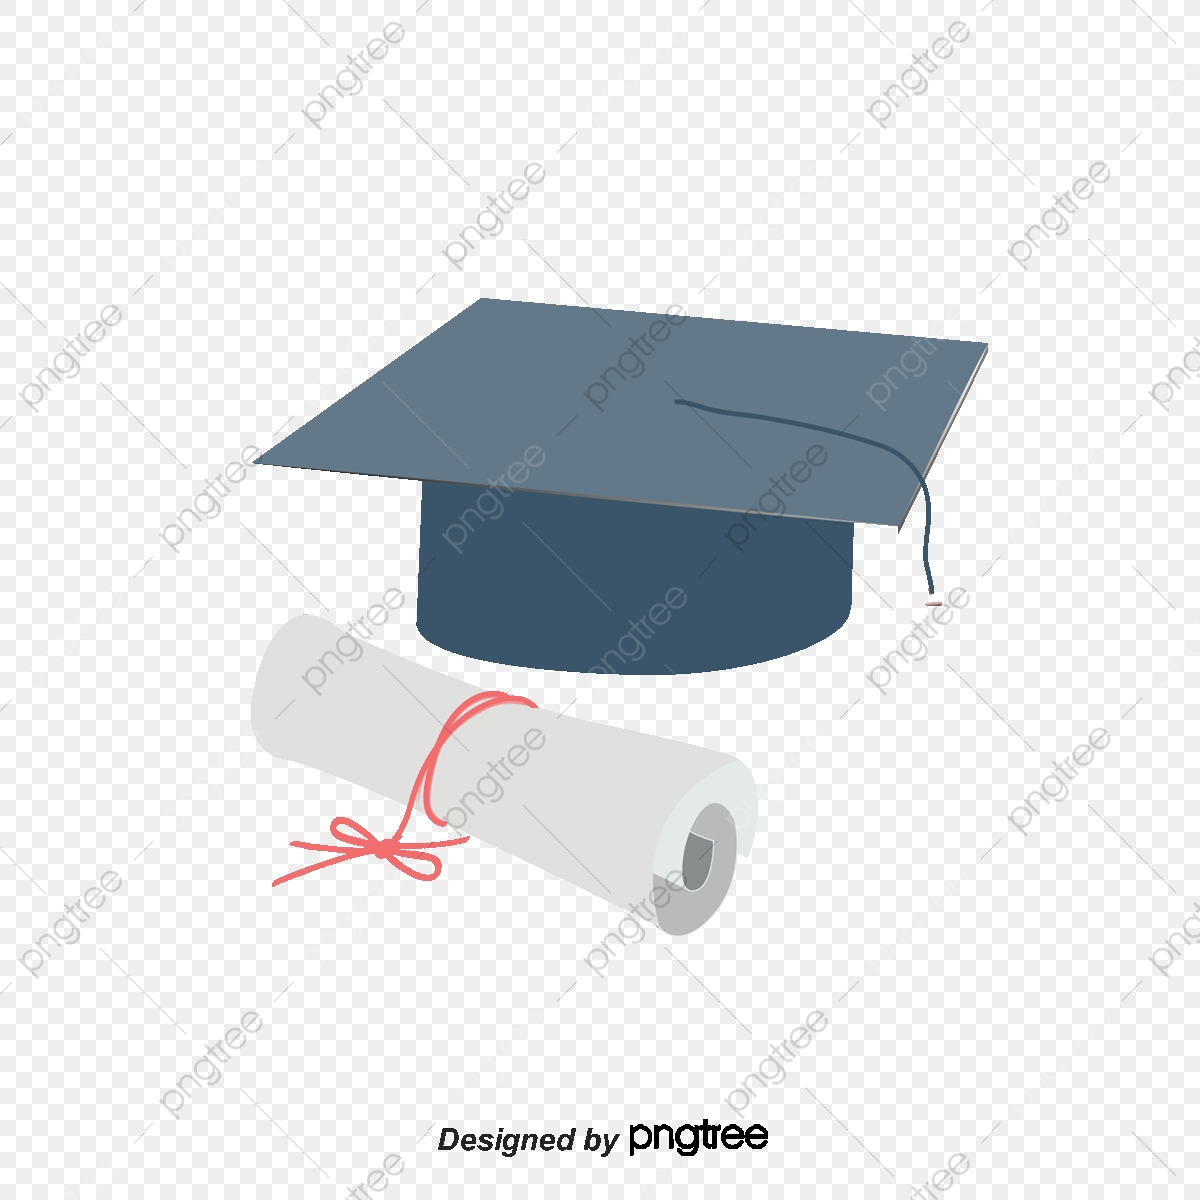 image transparent download Bachelor cap and icon. Vector certificate graduation